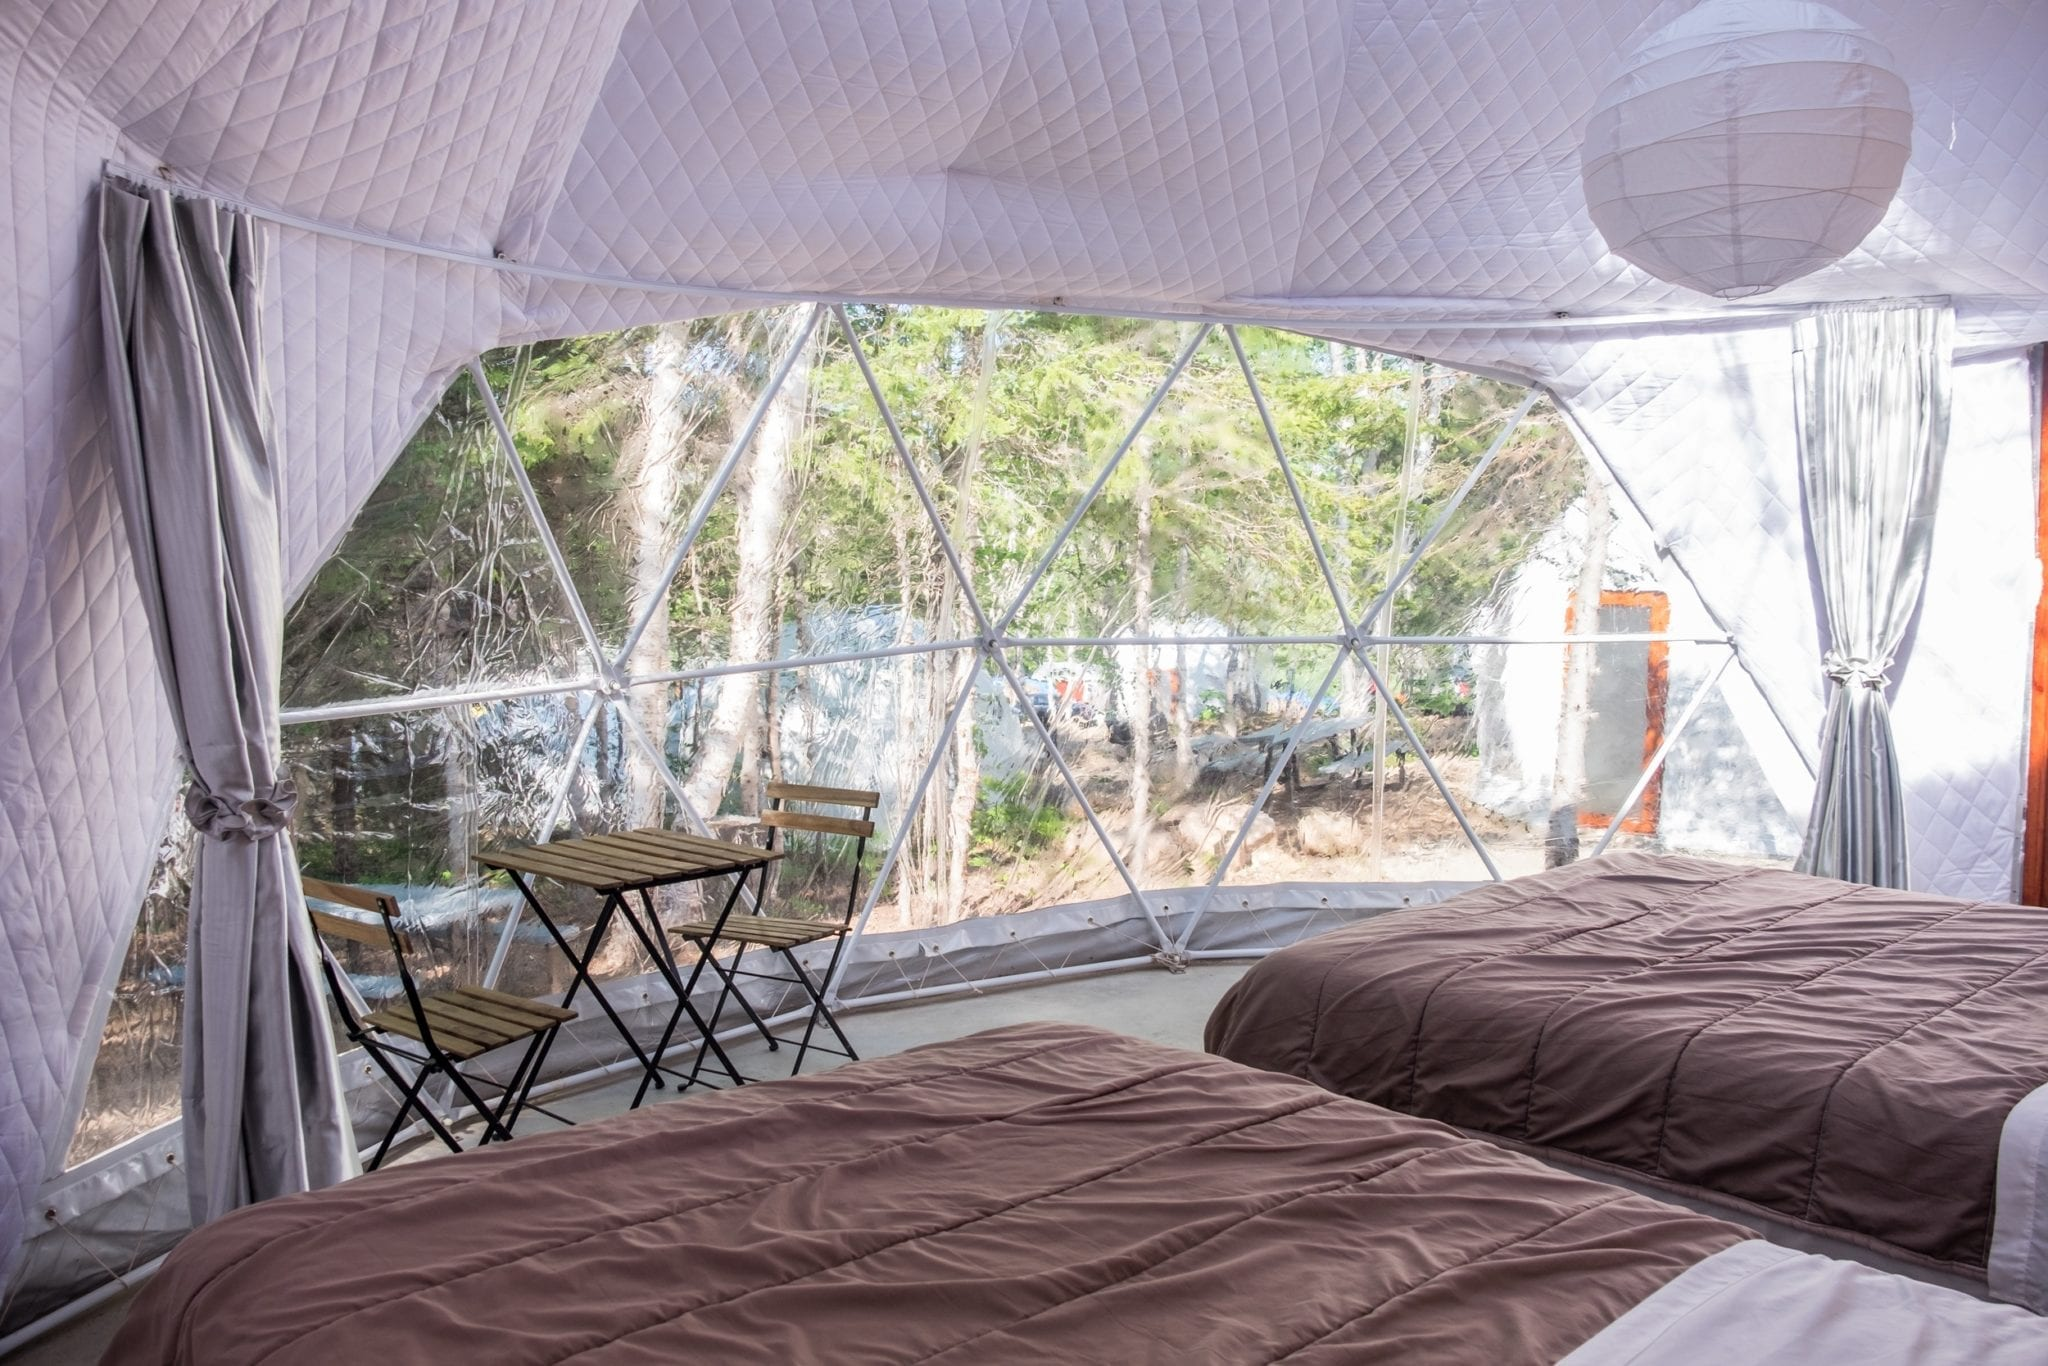 Two beds side by side in front of the triangular windows of the Blue Bayou Geodesic Domes